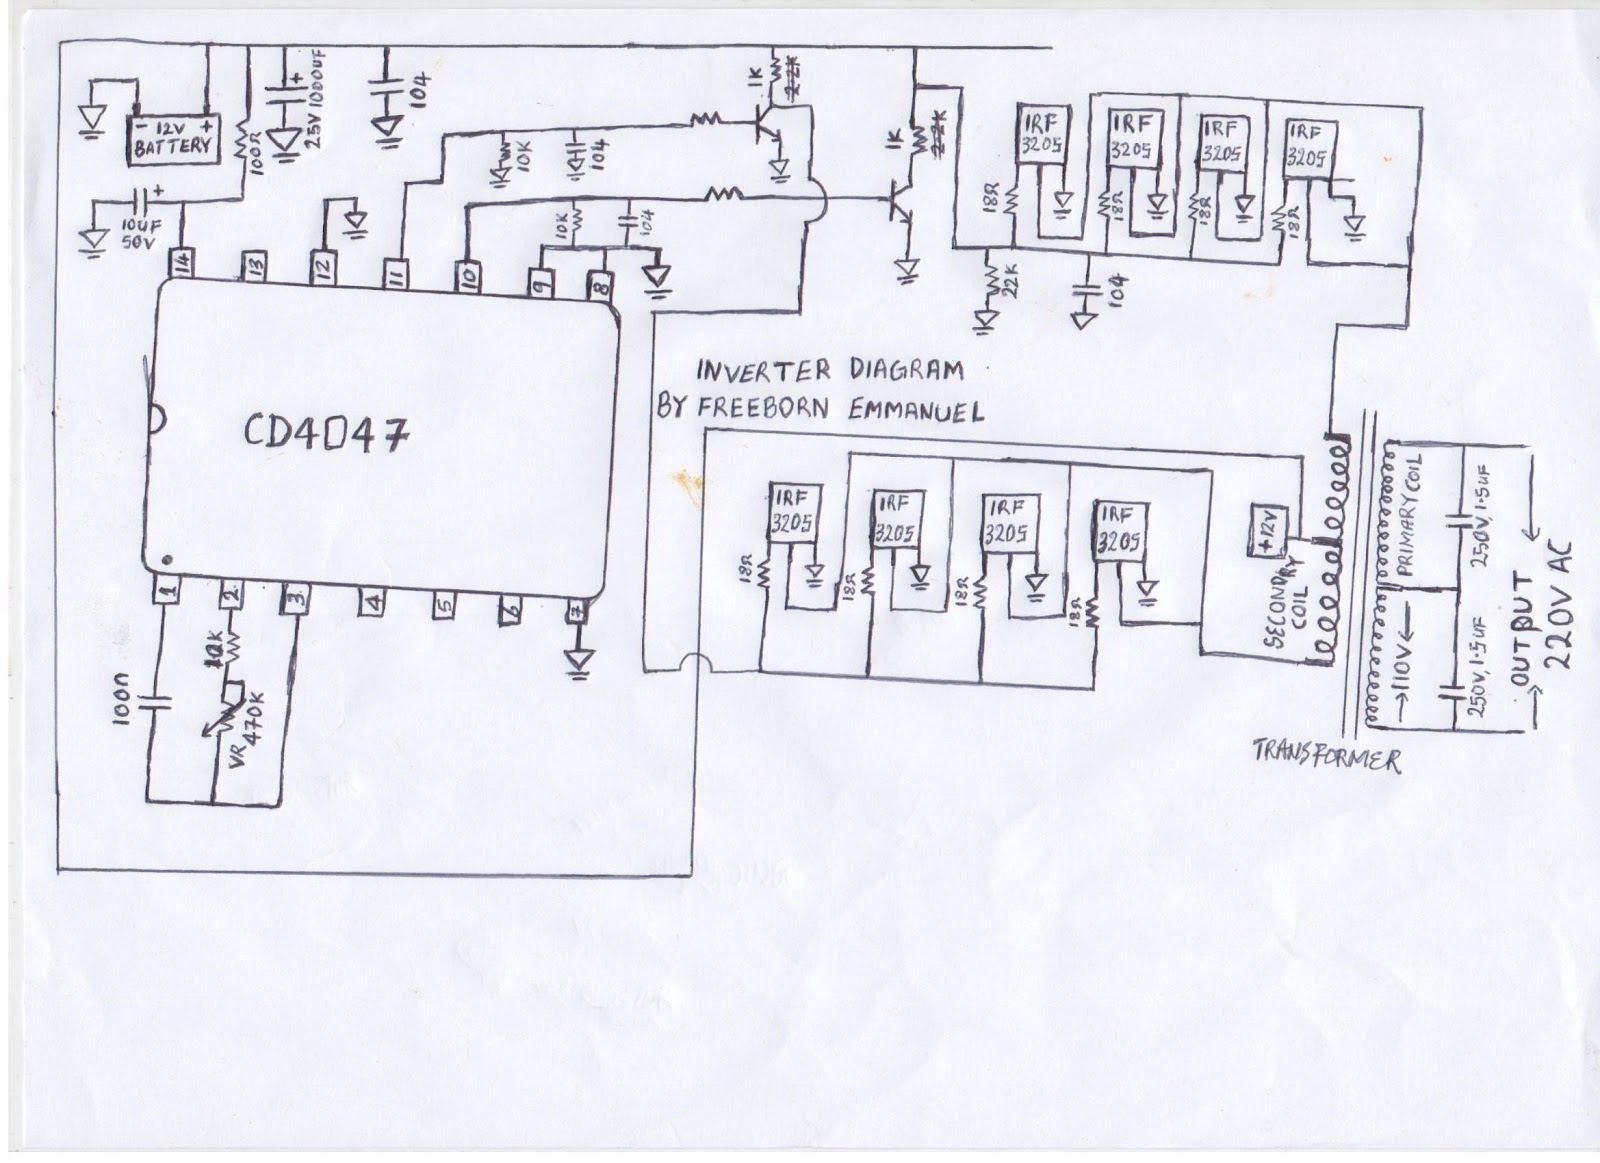 Salvajor Disposal Wiring Diagram Single Phase 208 | Wiring Liry on